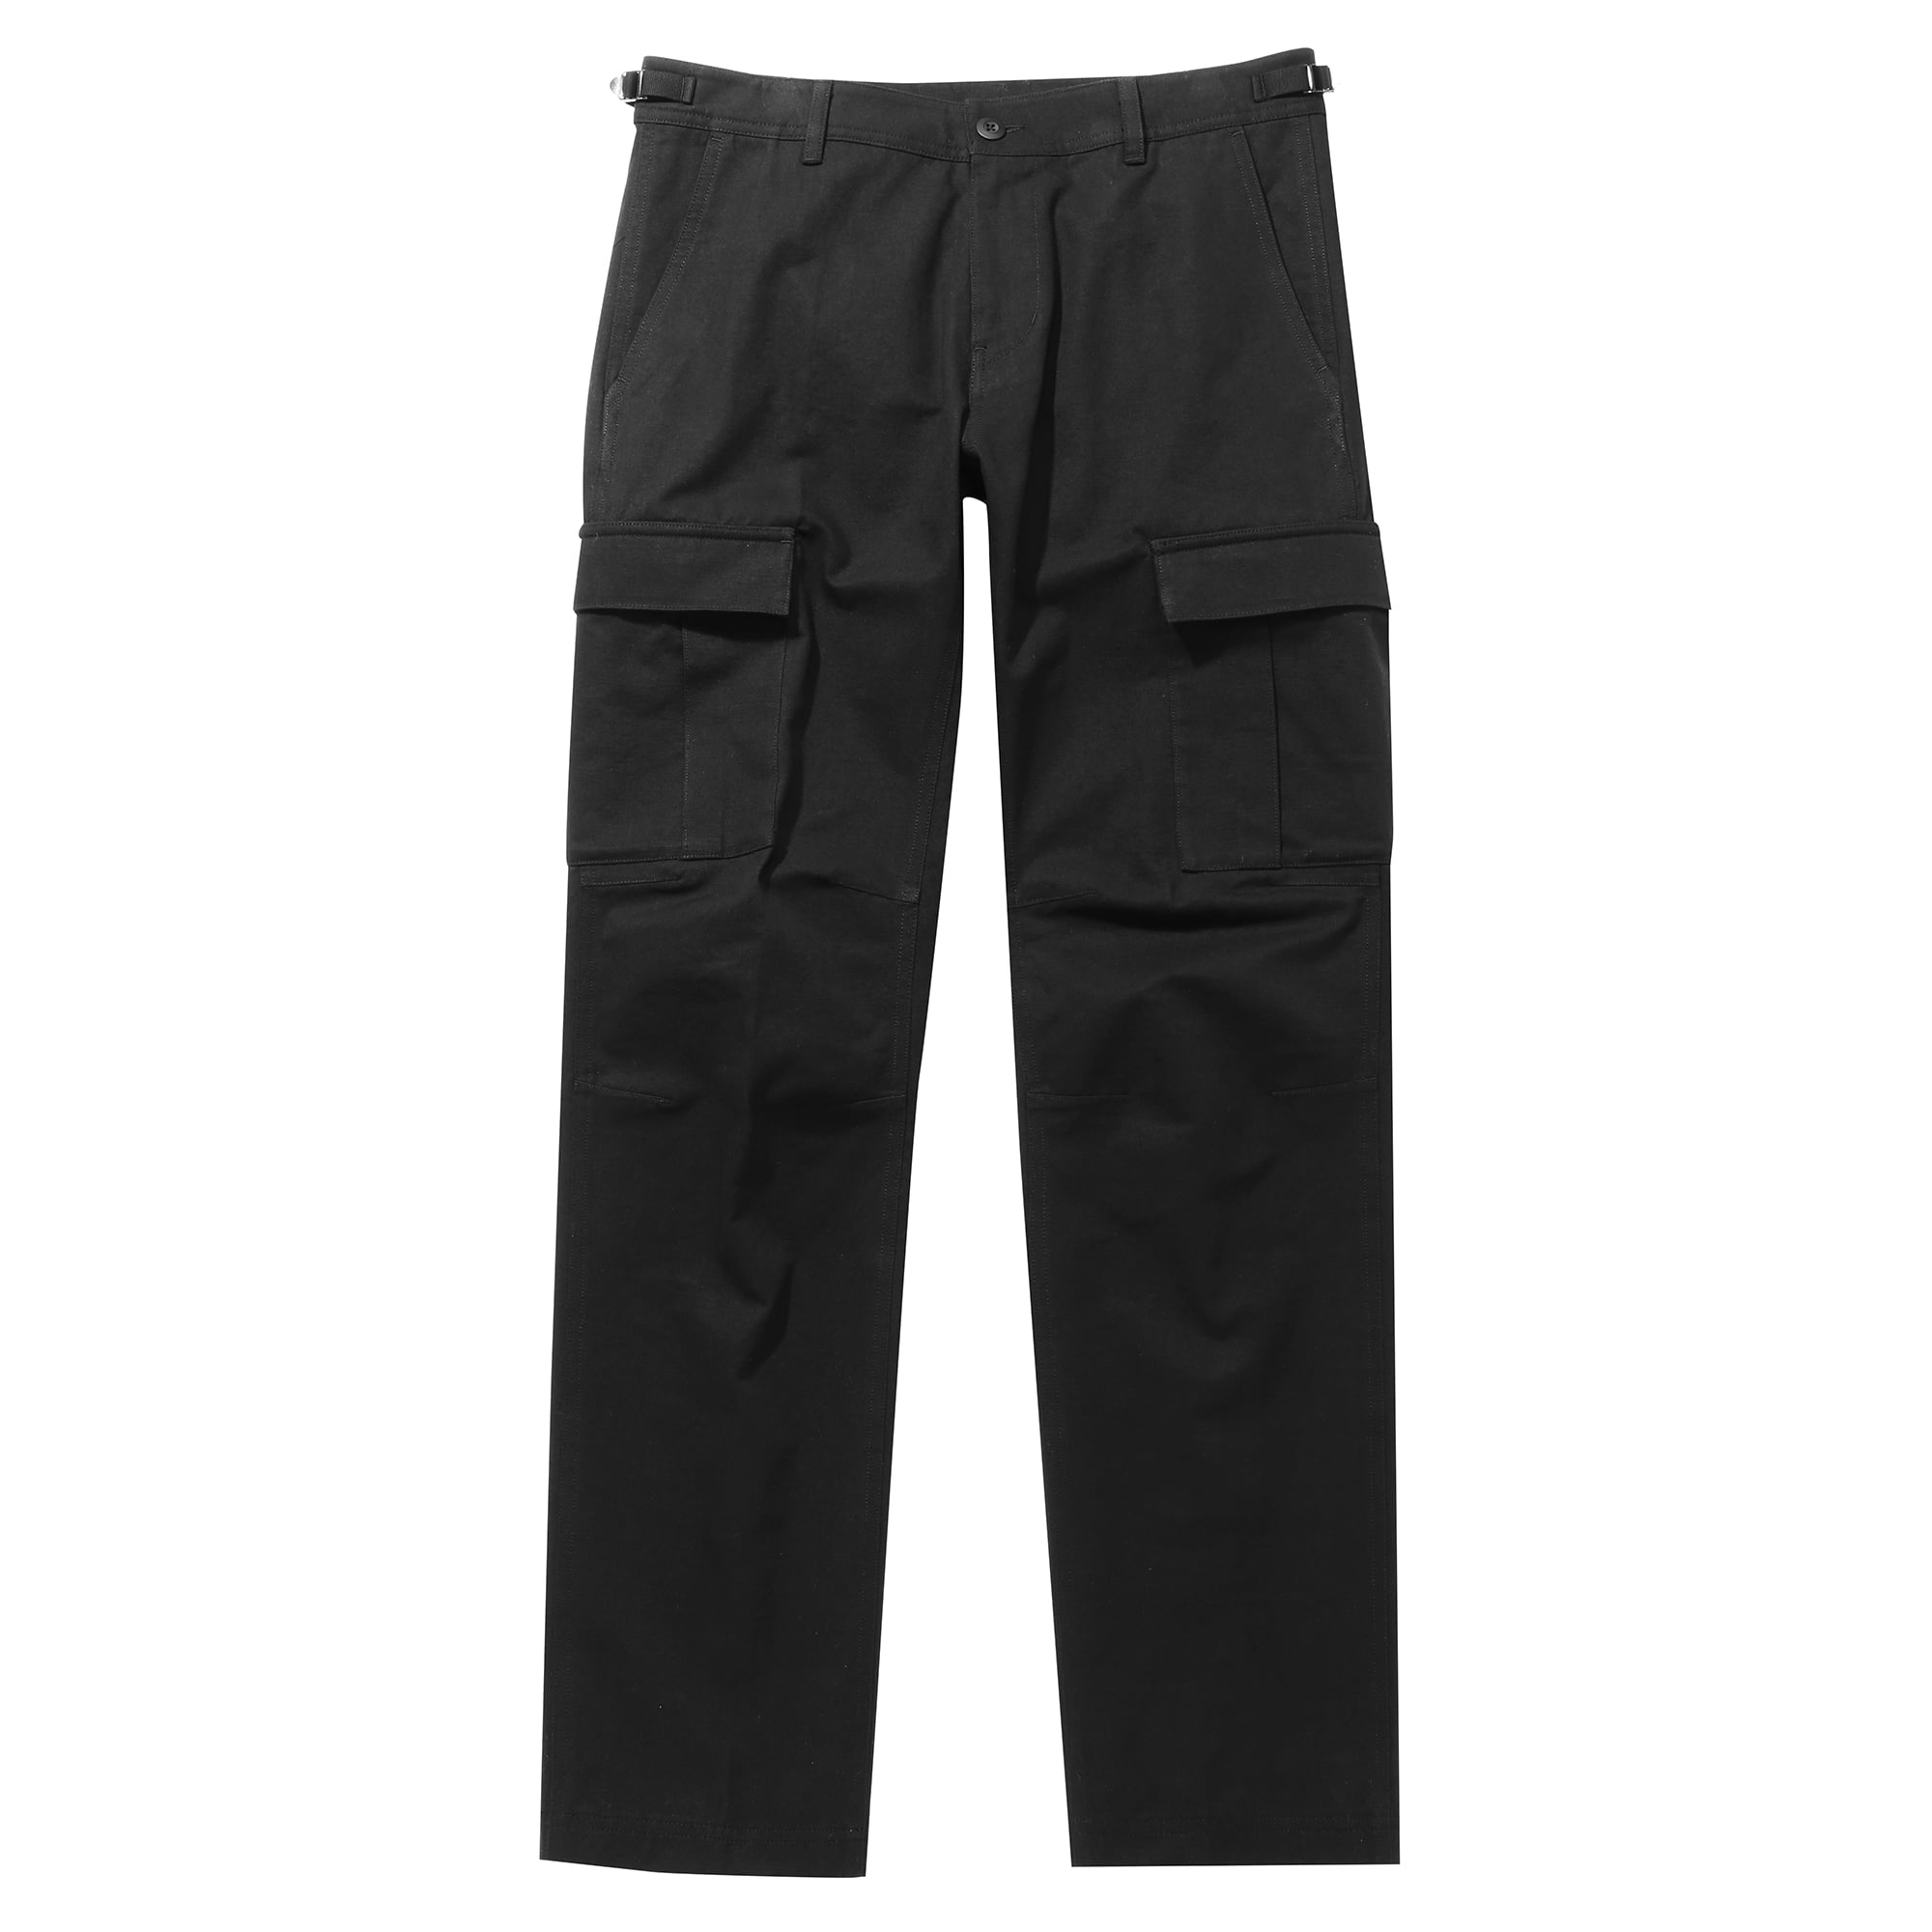 19FW MM Regular cargo pants  MYFAX4504